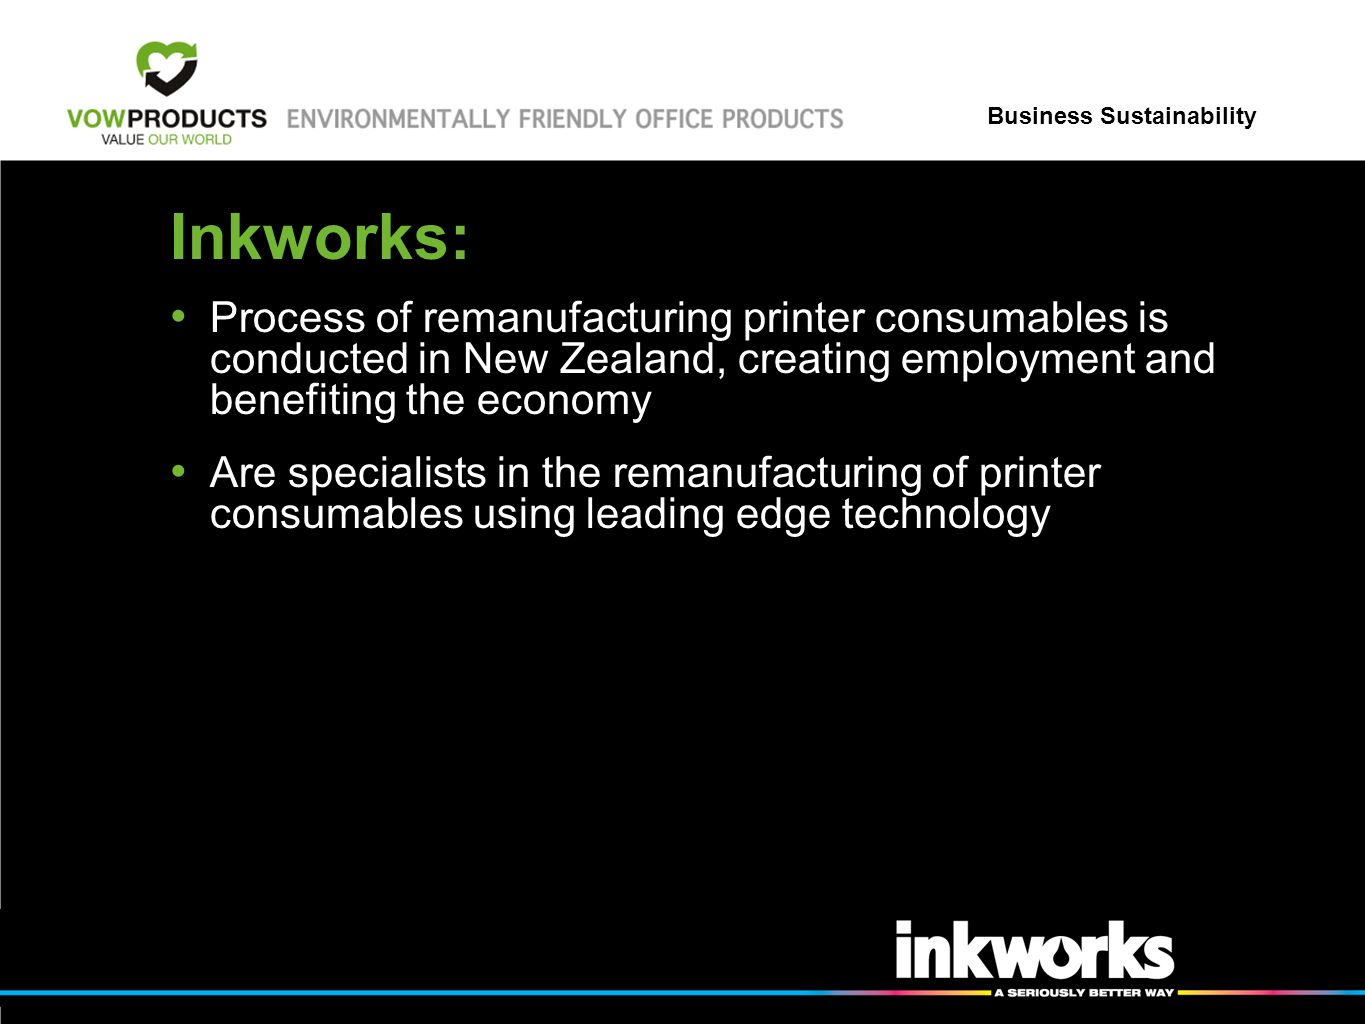 Business Sustainability Inkworks: Process of remanufacturing printer consumables is conducted in New Zealand, creating employment and benefiting the economy Are specialists in the remanufacturing of printer consumables using leading edge technology